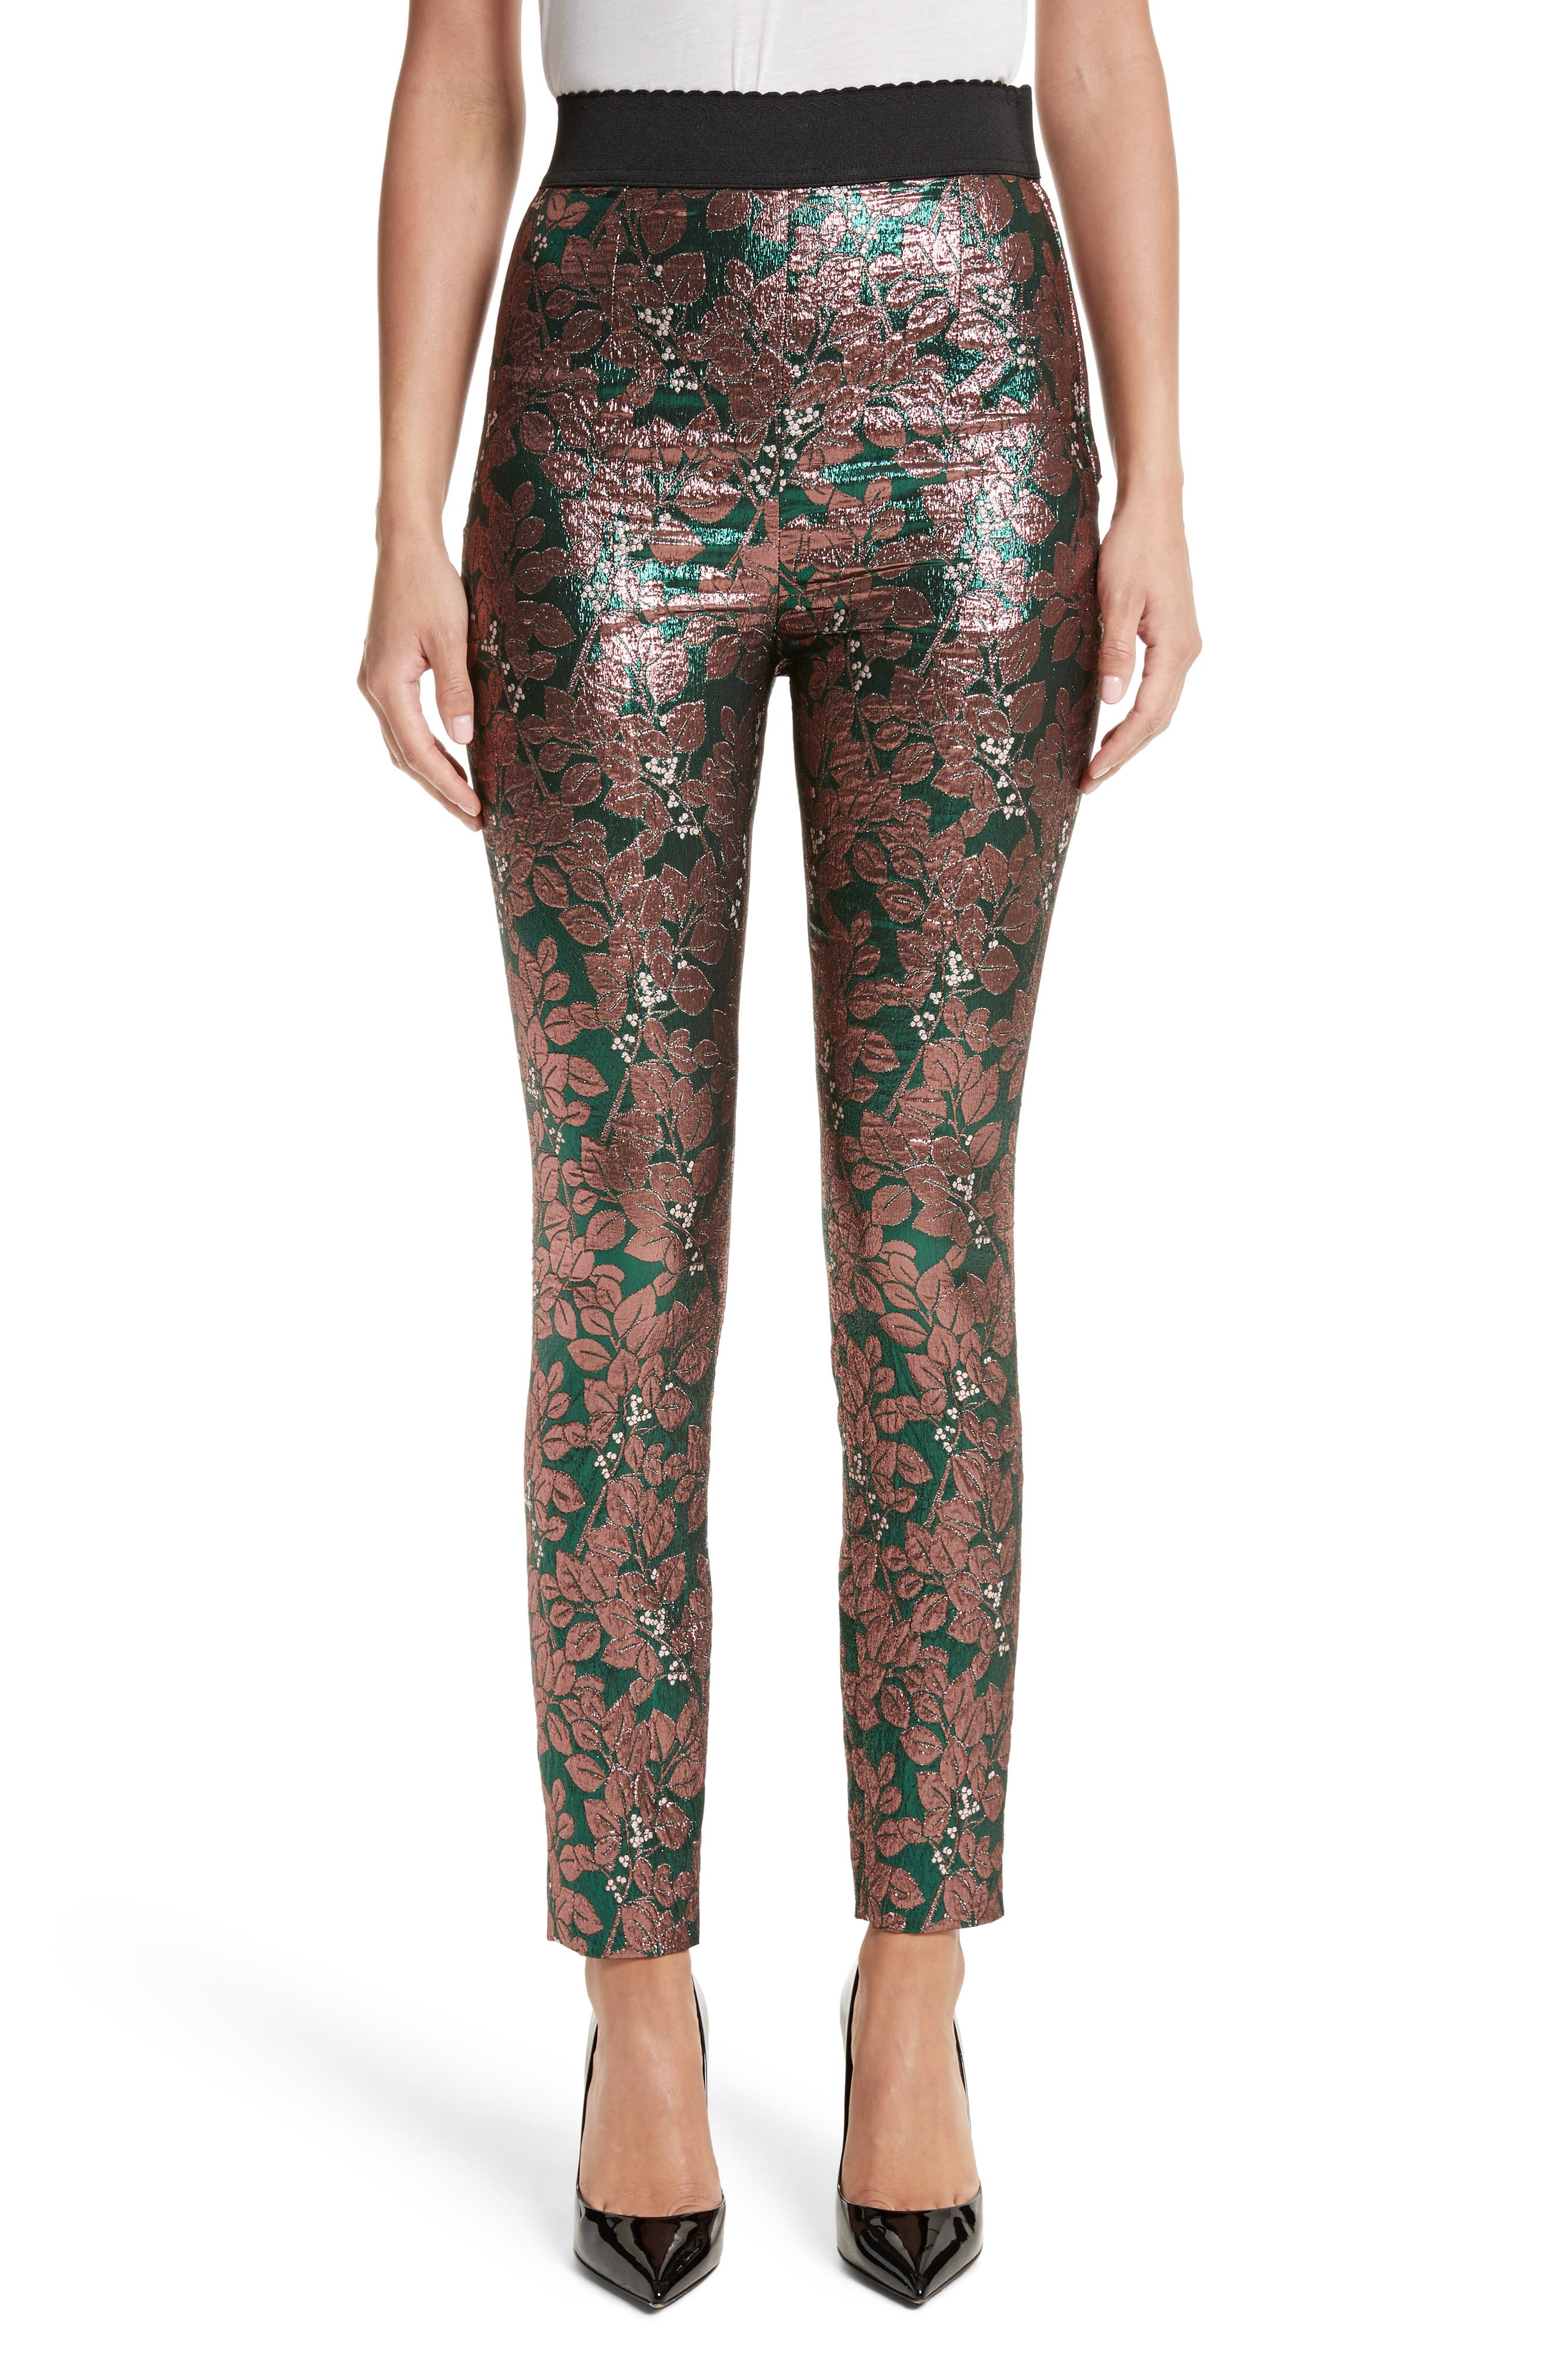 Dolce&Gabbana Metallic Jacquard Leggings